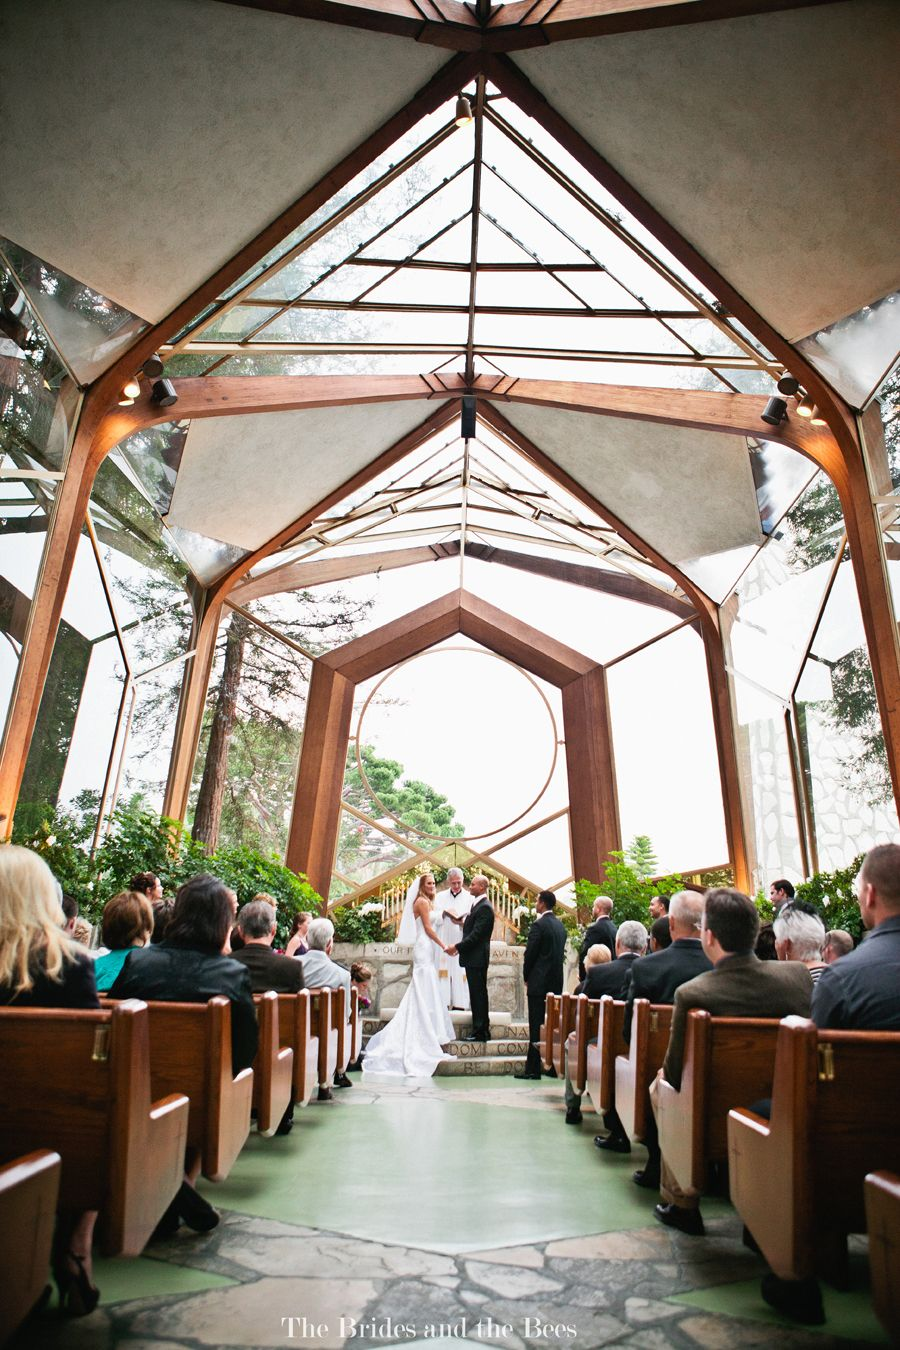 A Gorgeous Venue The Wayfarer S Chapel In Rancho Palos Verdes Calif Was Designed